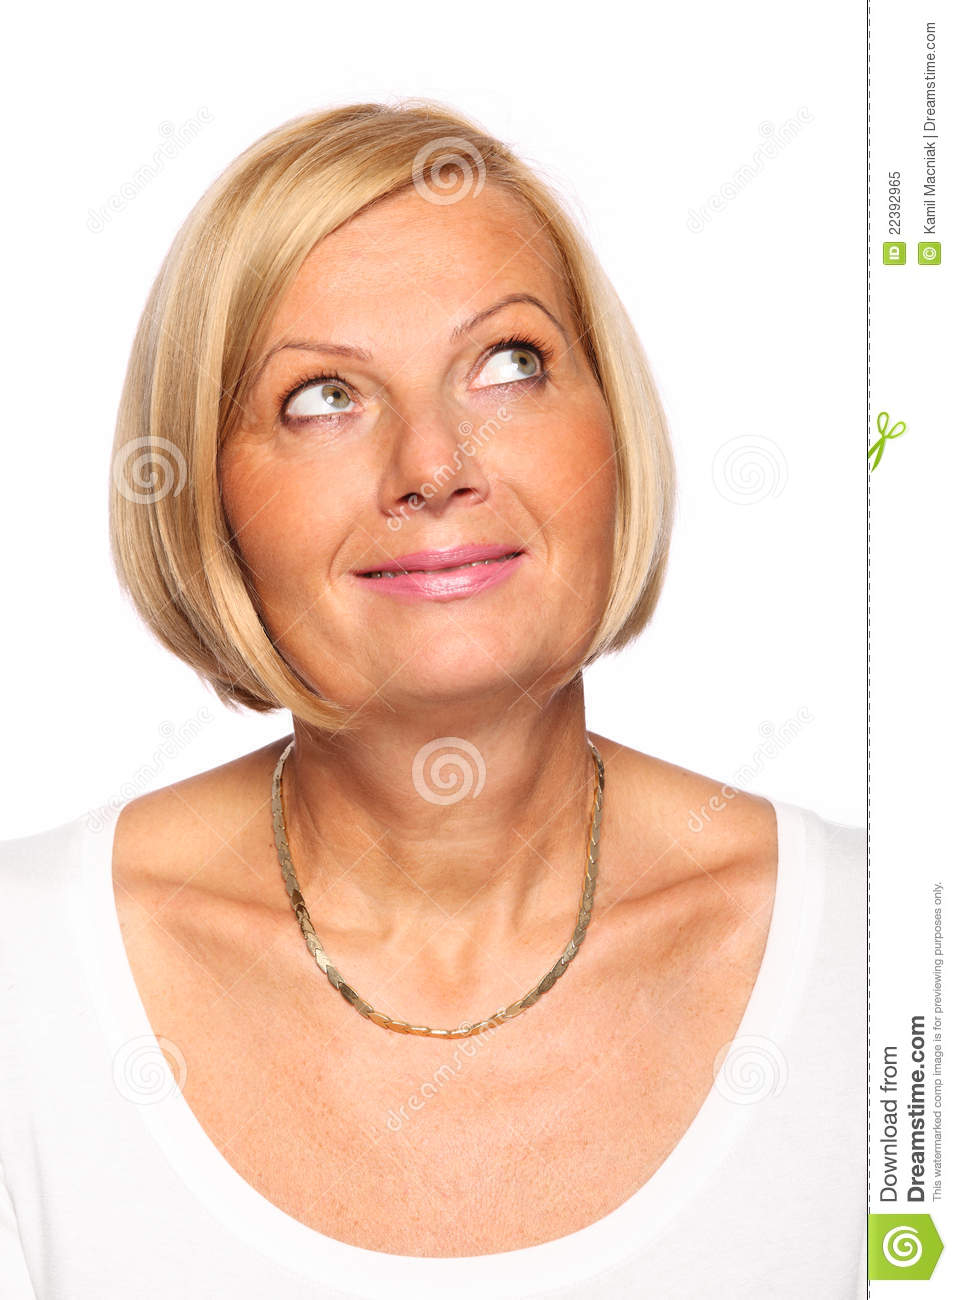 A portrait of a happy mature woman looking up over white background